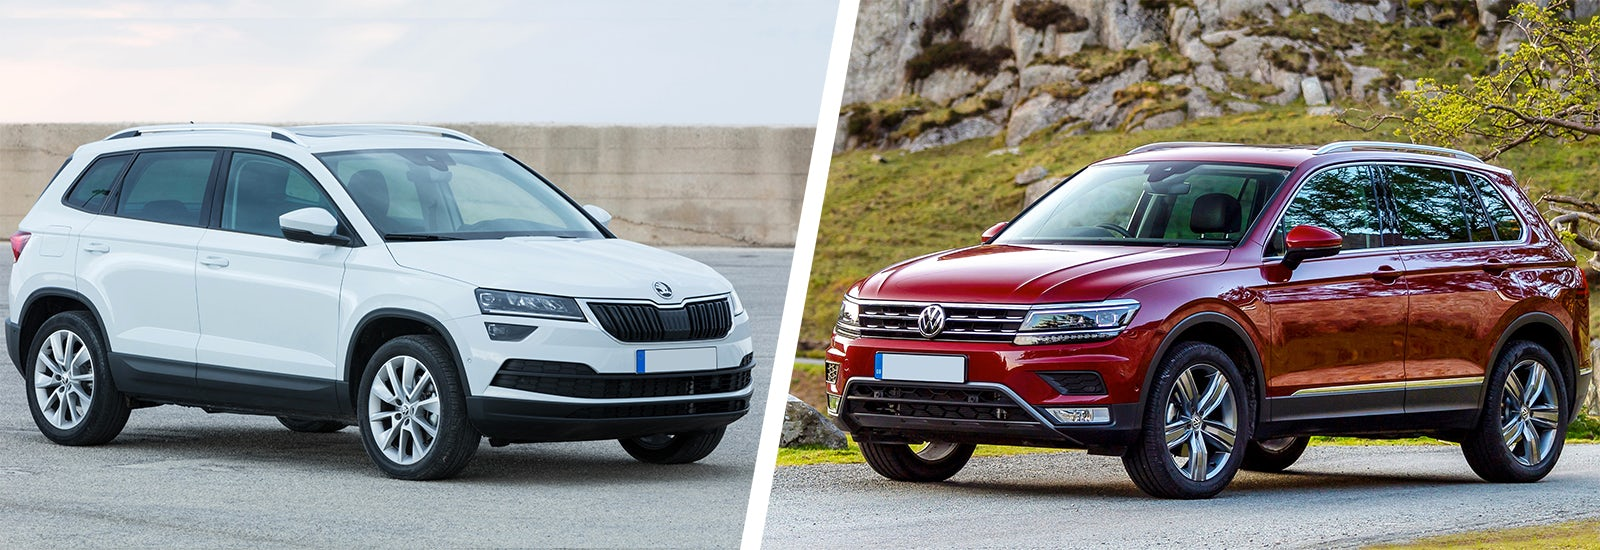 skoda karoq vs vw tiguan which is best carwow. Black Bedroom Furniture Sets. Home Design Ideas